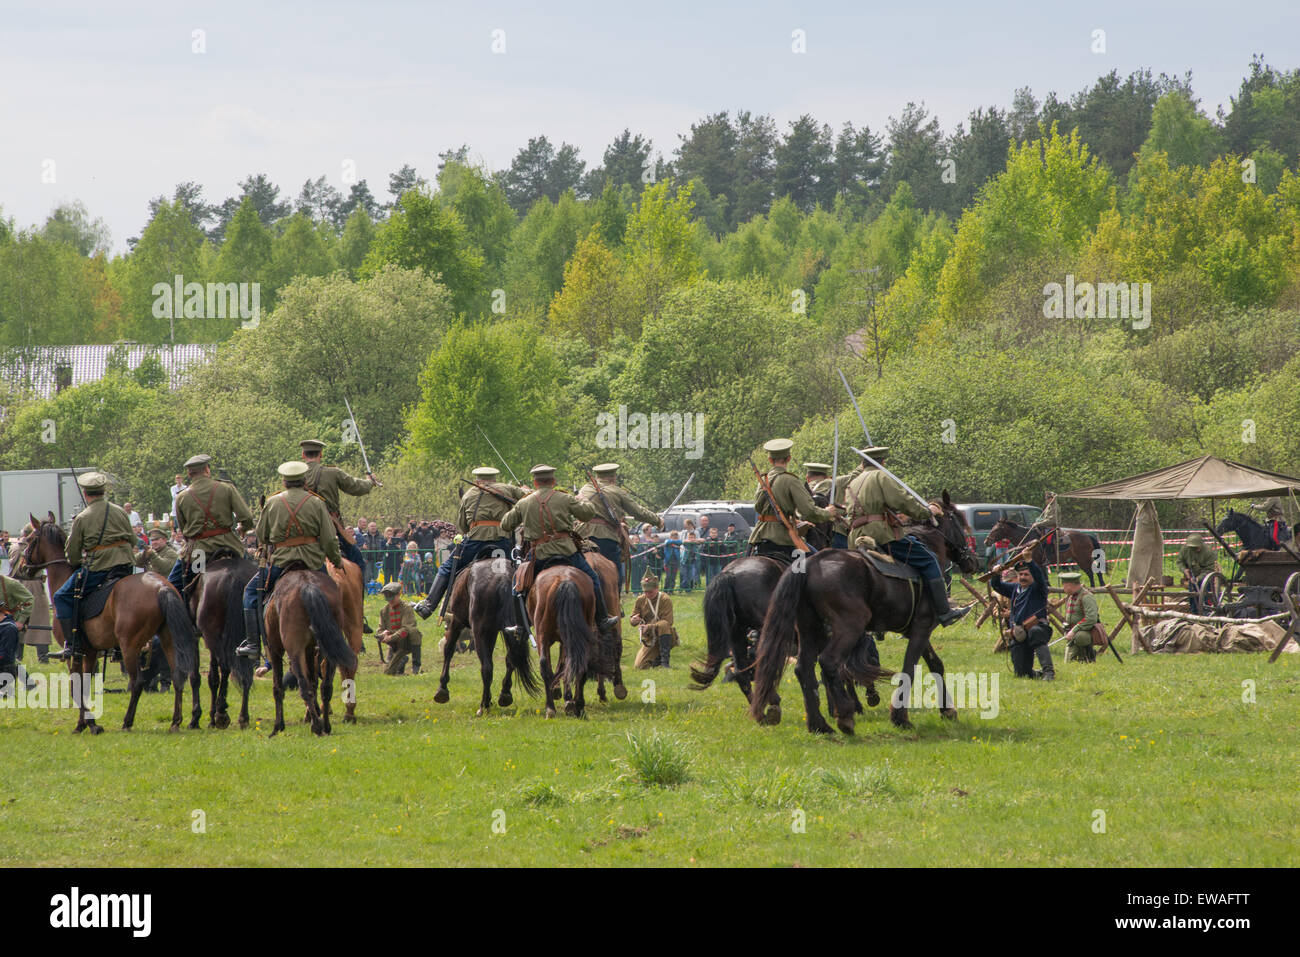 RUSSIA, CHERNOGOLOVKA - MAY 17: Cavalry with swords ride on horses on History reenactment of battle of Civil War - Stock Image